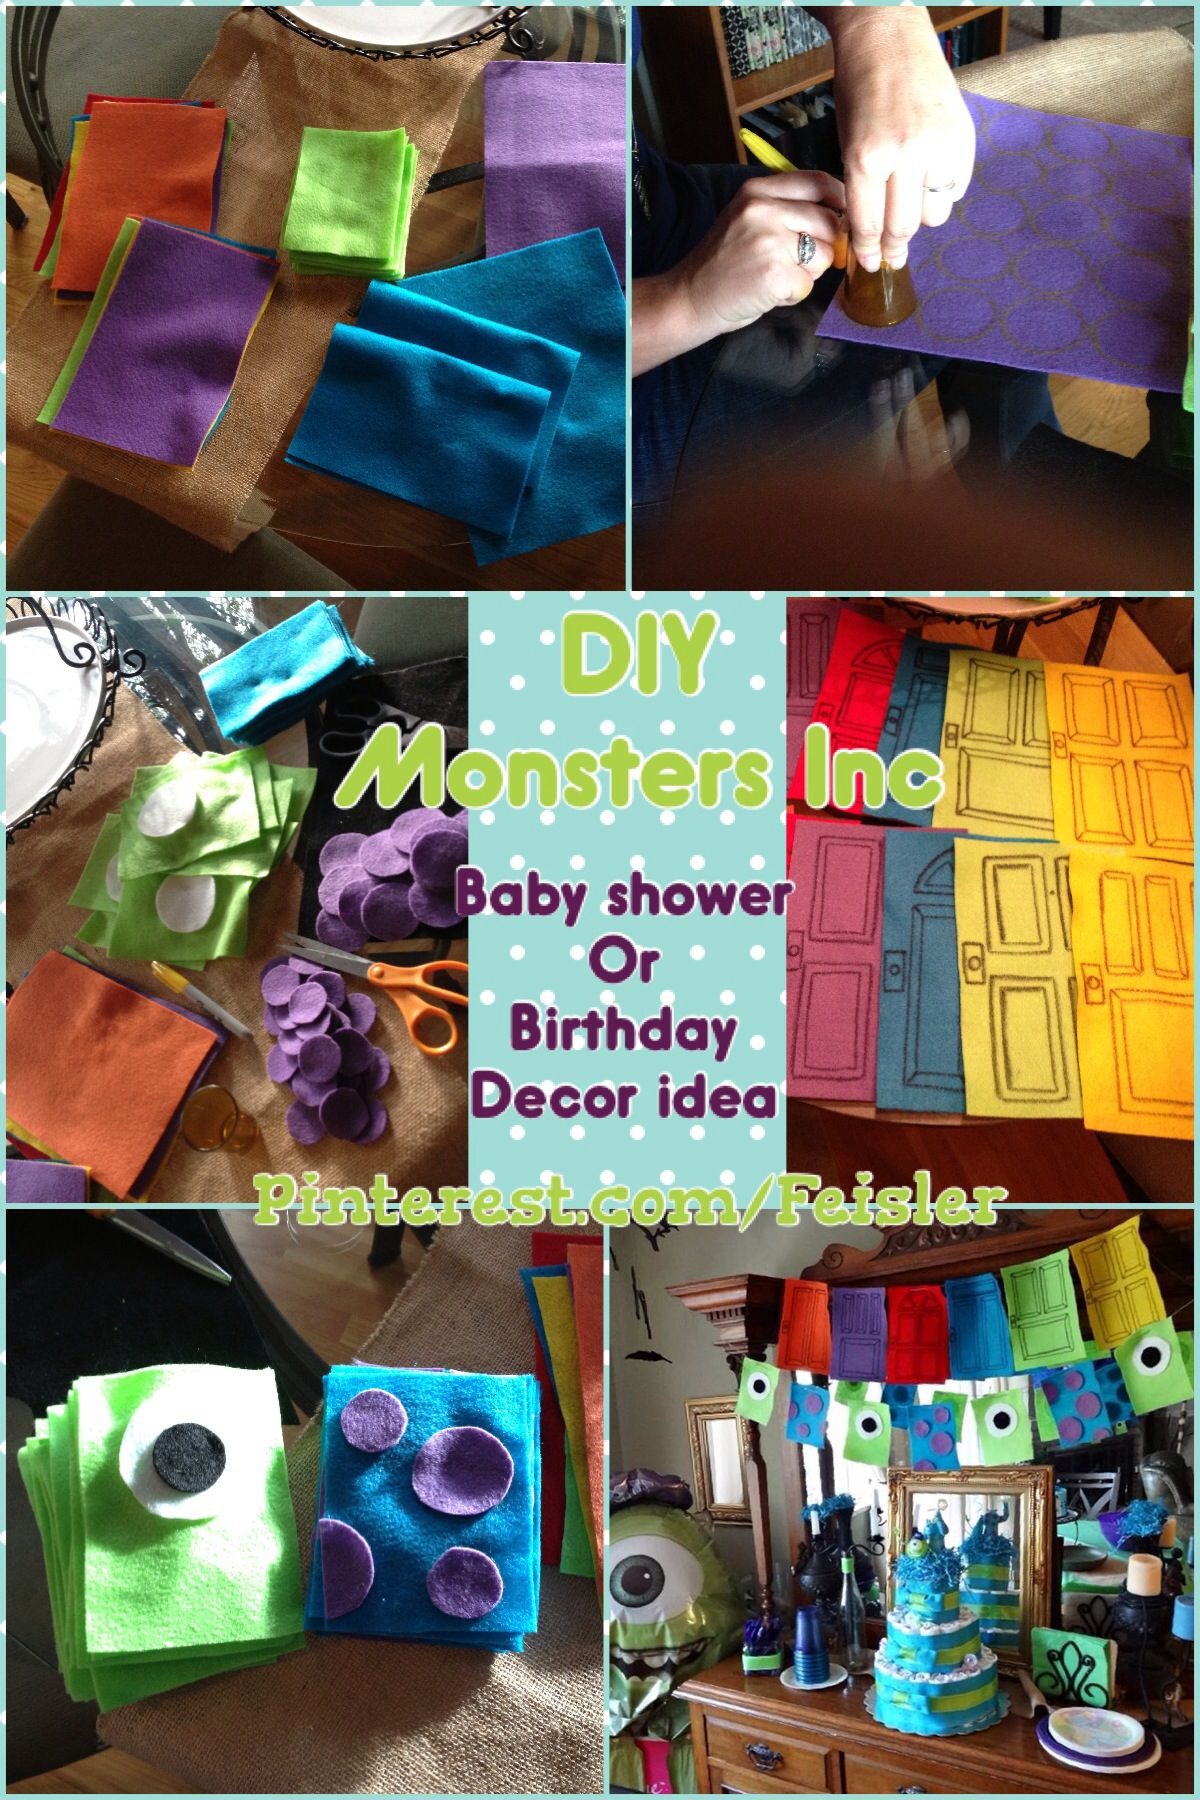 Do it yourself diy monsters inc birthday or baby shower decoration do it yourself diy monsters inc birthday or baby shower decoration idea solutioingenieria Images